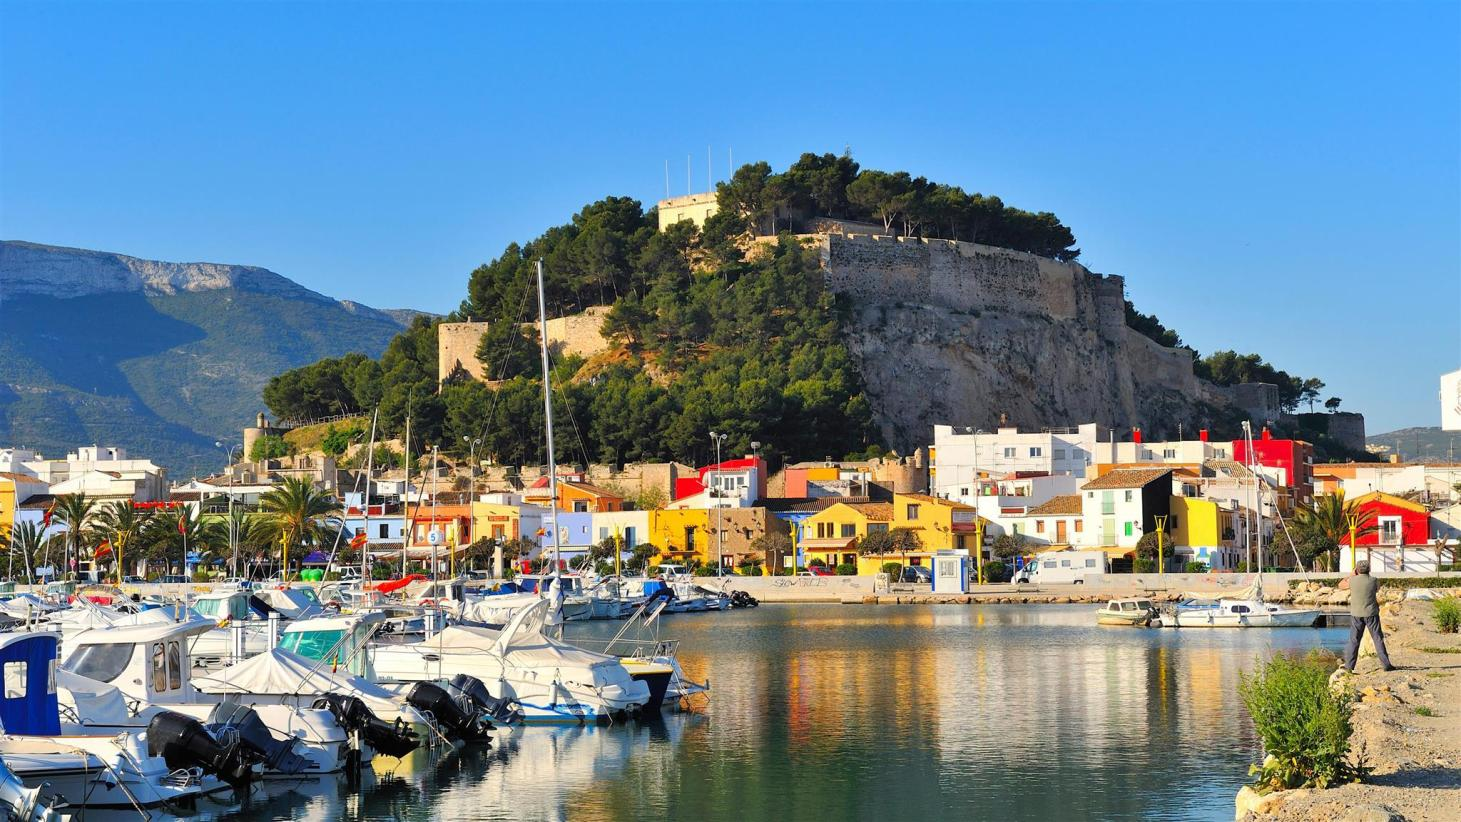 30 Best Denia Hotels in 2020 | Great Savings & Reviews of Hotels ...